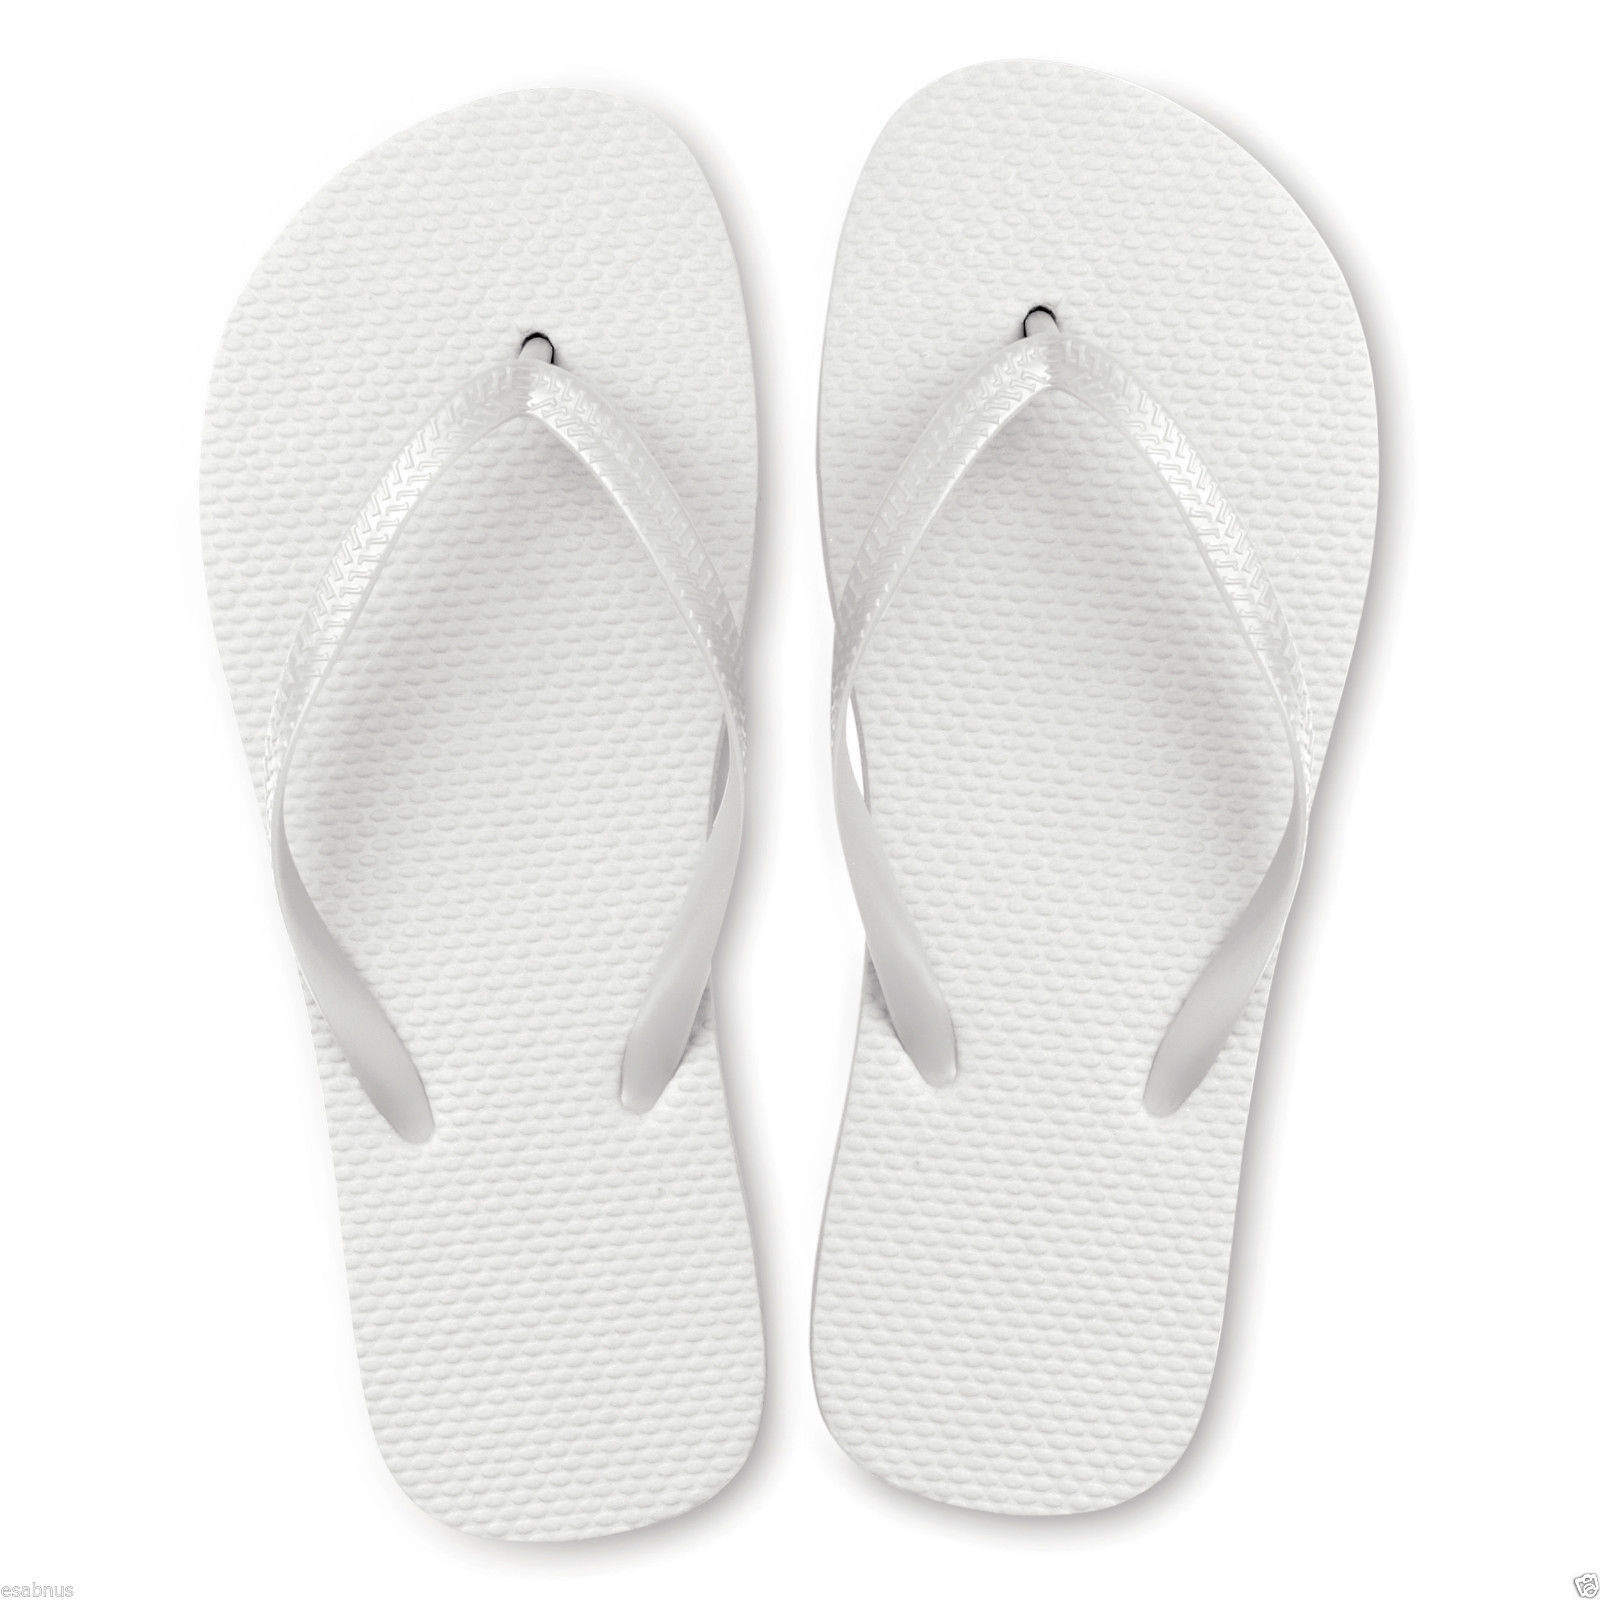 50pr Flip Flops Men/Women- Summer Beach Size M/L Flip-Flops Light ...